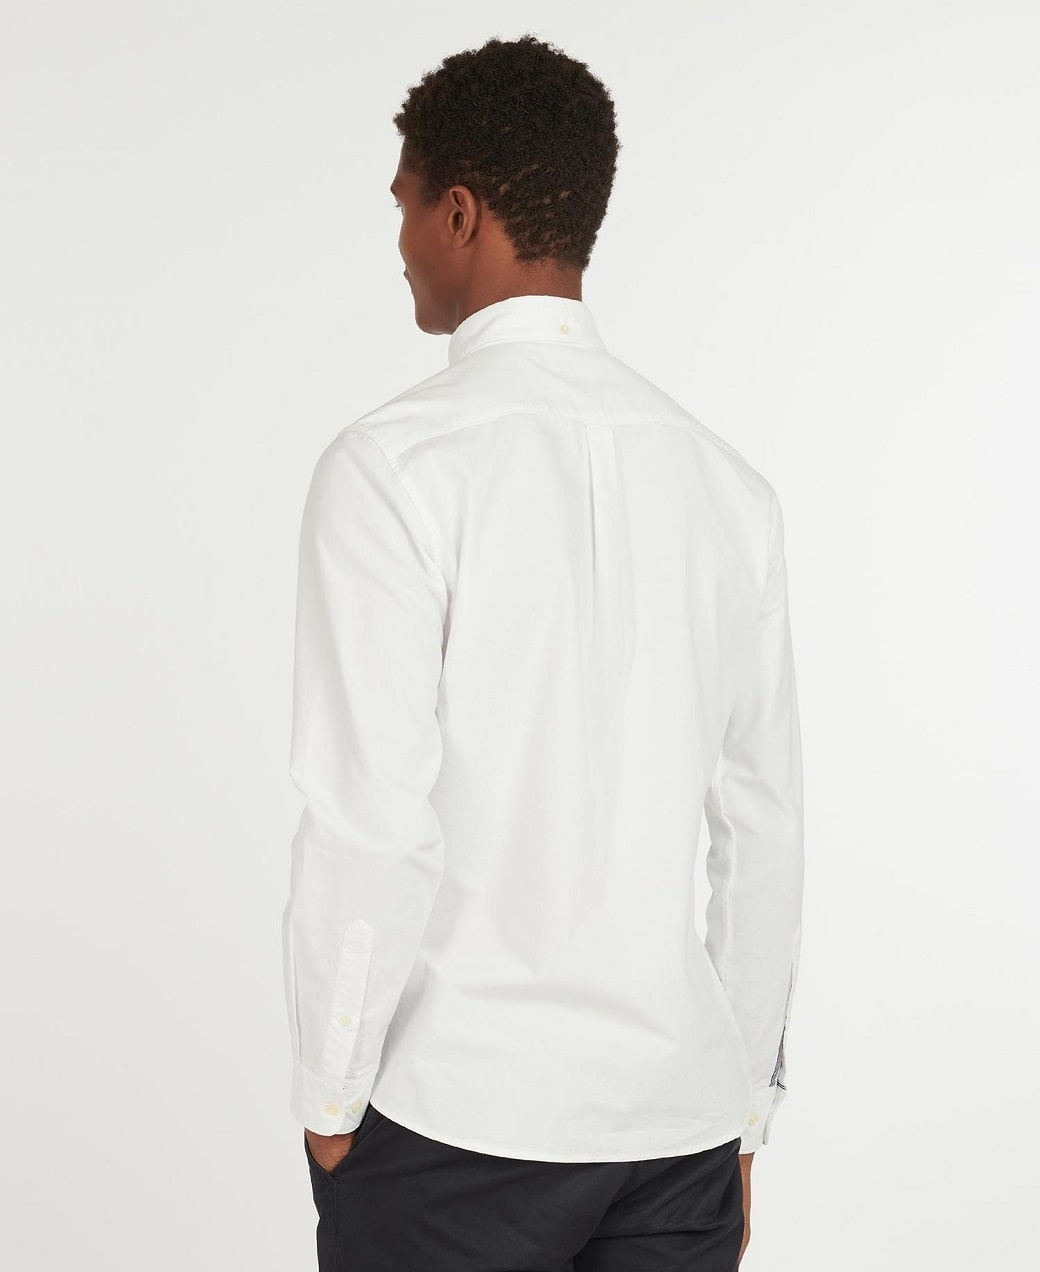 Barbour Oxford 13 Tailored Shirt White-4